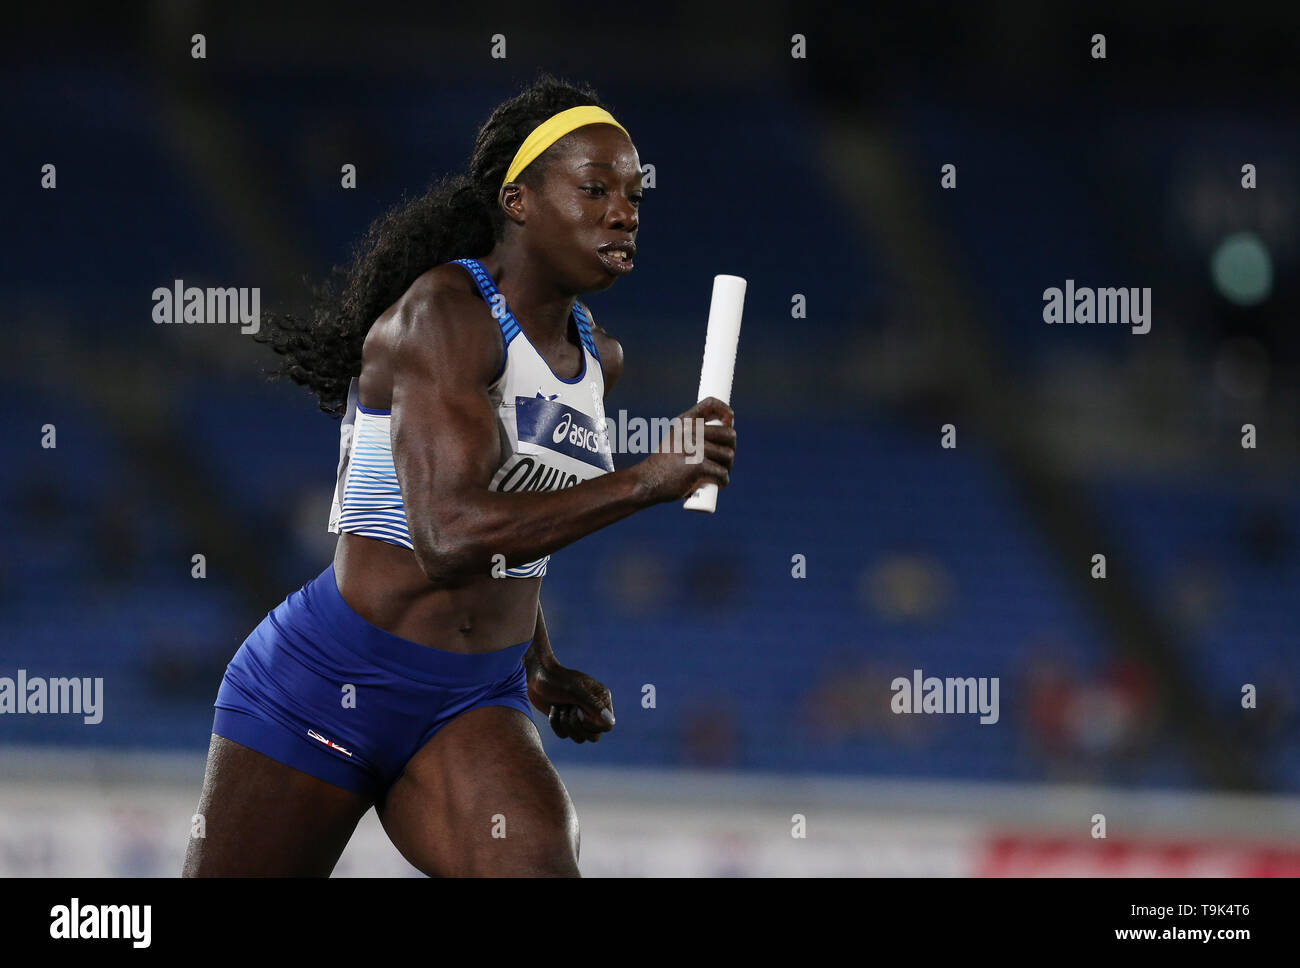 YOKOHAMA, JAPAN - MAY 10: Anyika Onuora of Great Britain and Northern Ireland during Day 1 of the 2019 IAAF World Relay Championships at the Nissan Stadium on Saturday May 11, 2019 in Yokohama, Japan. (Photo by Roger Sedres for the IAAF) - Stock Image